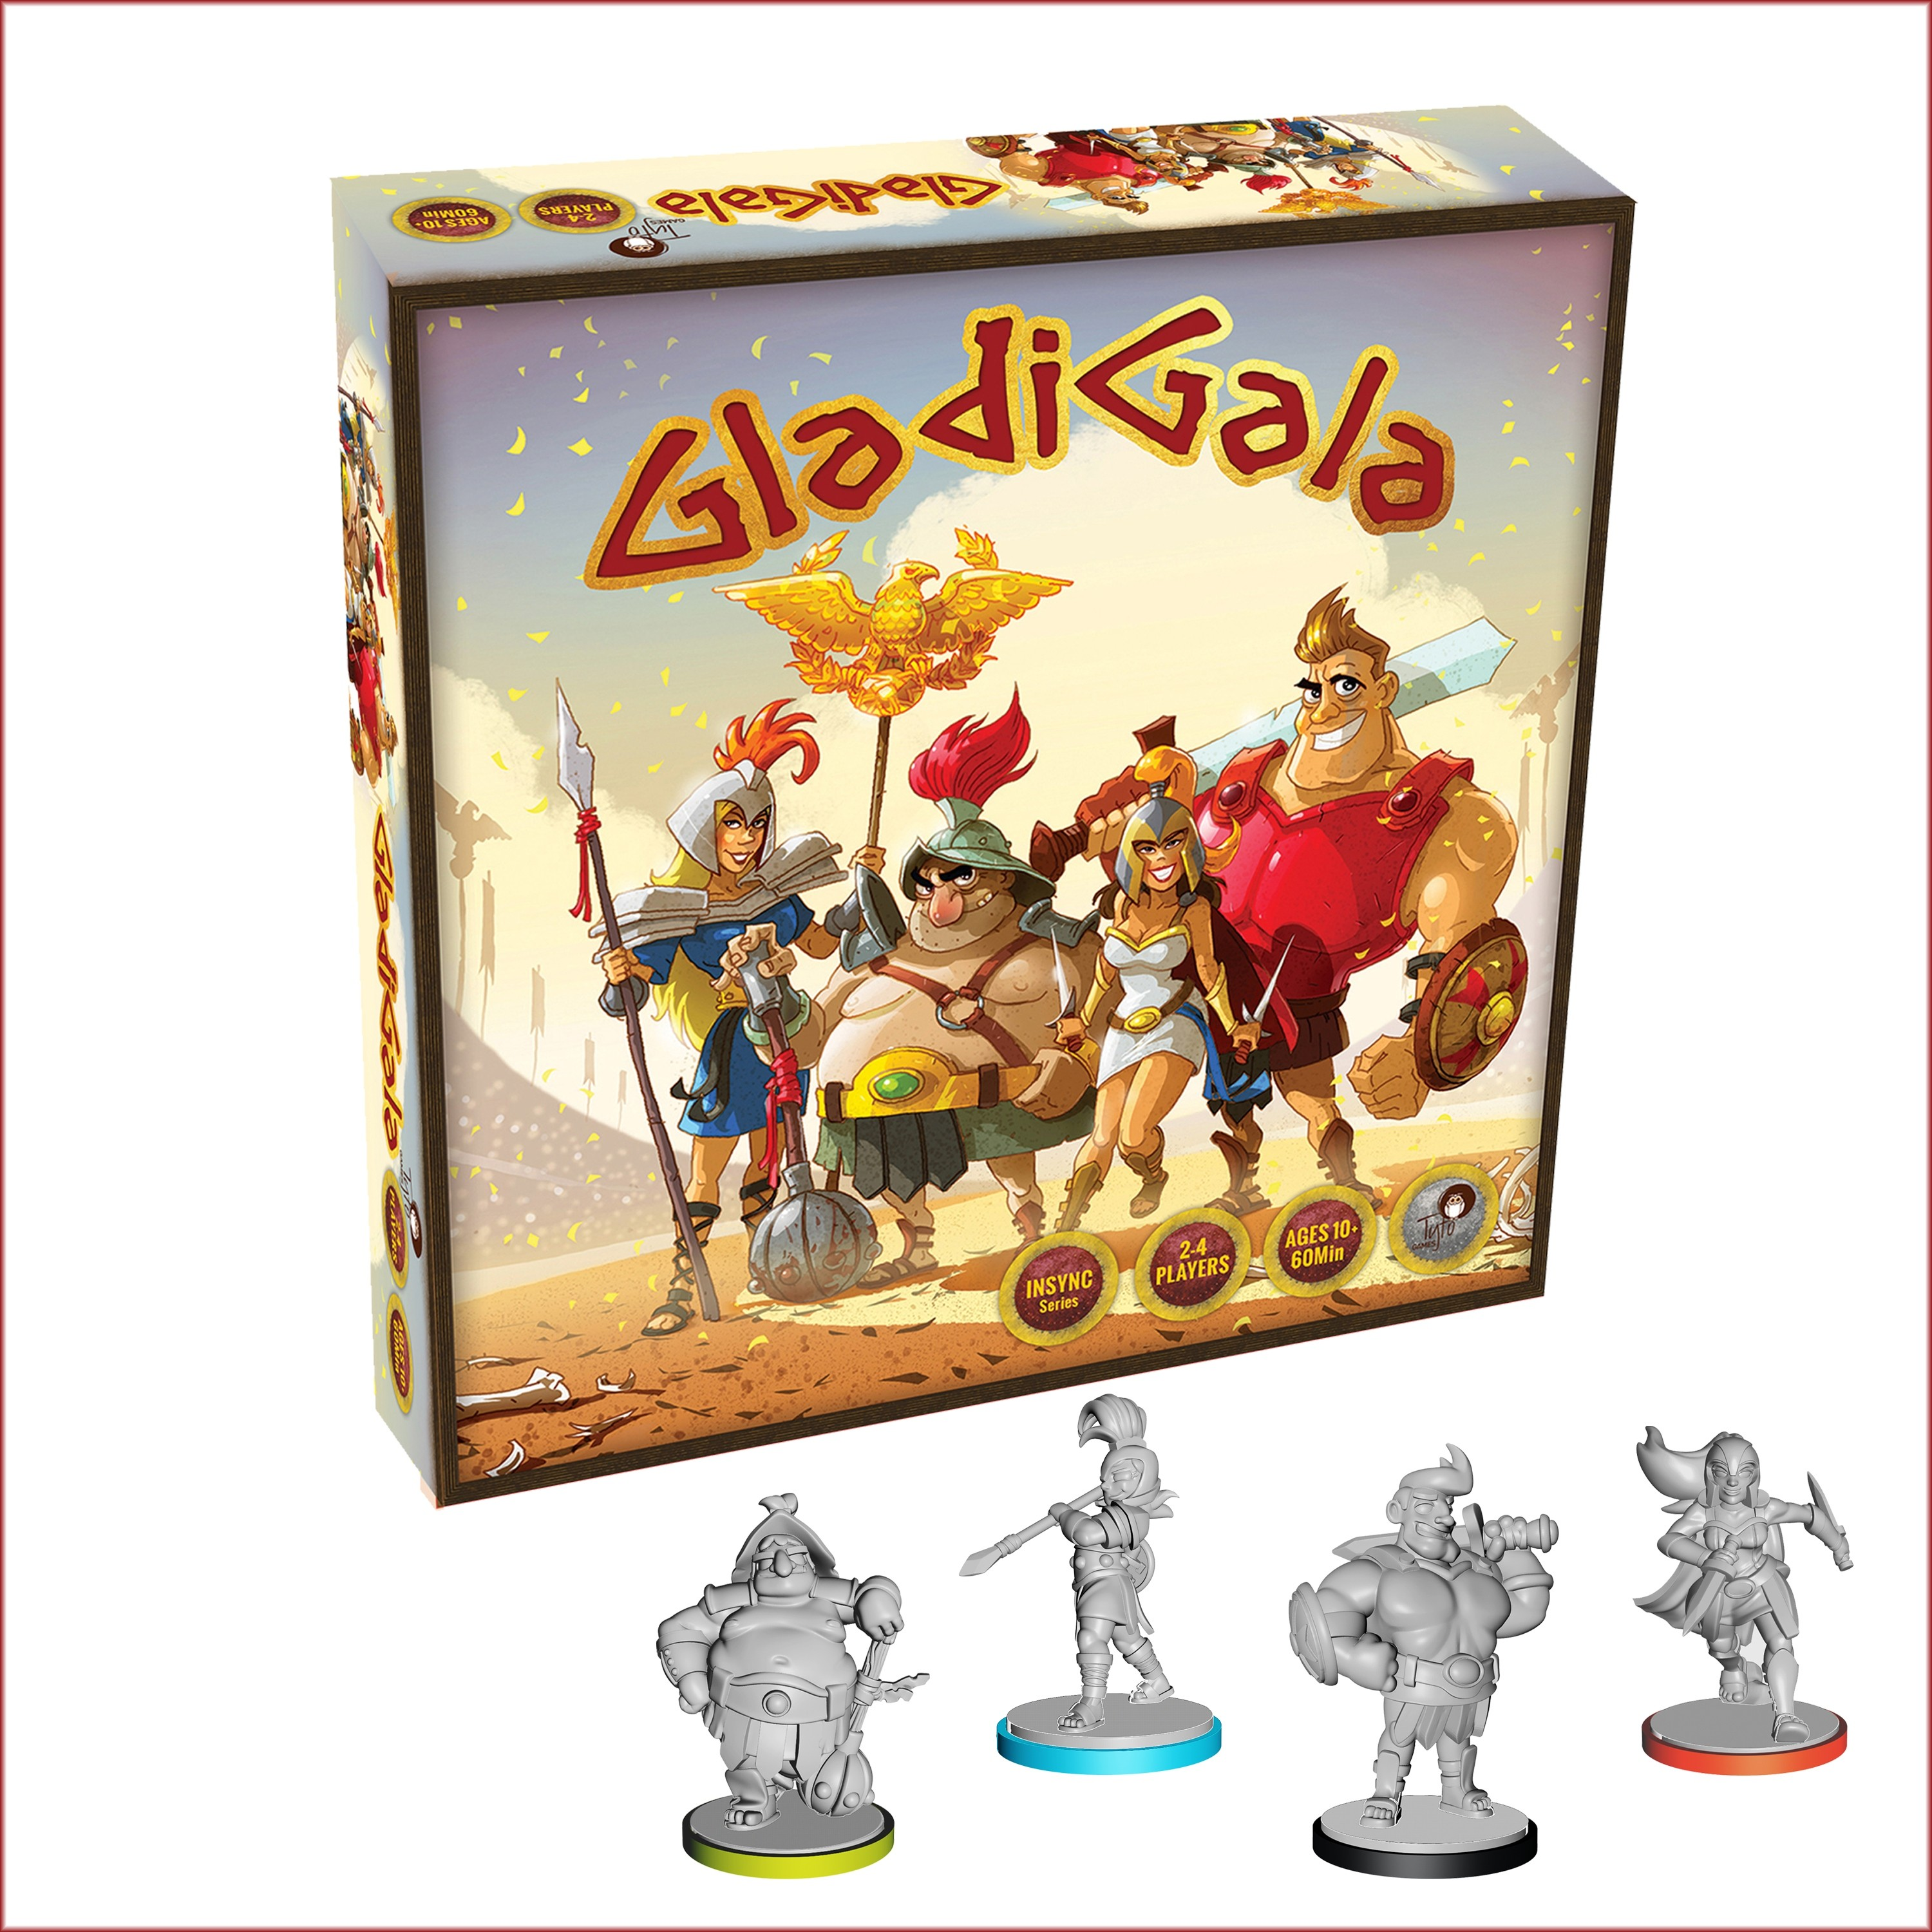 GladiGala Strategy Miniature Boardgame